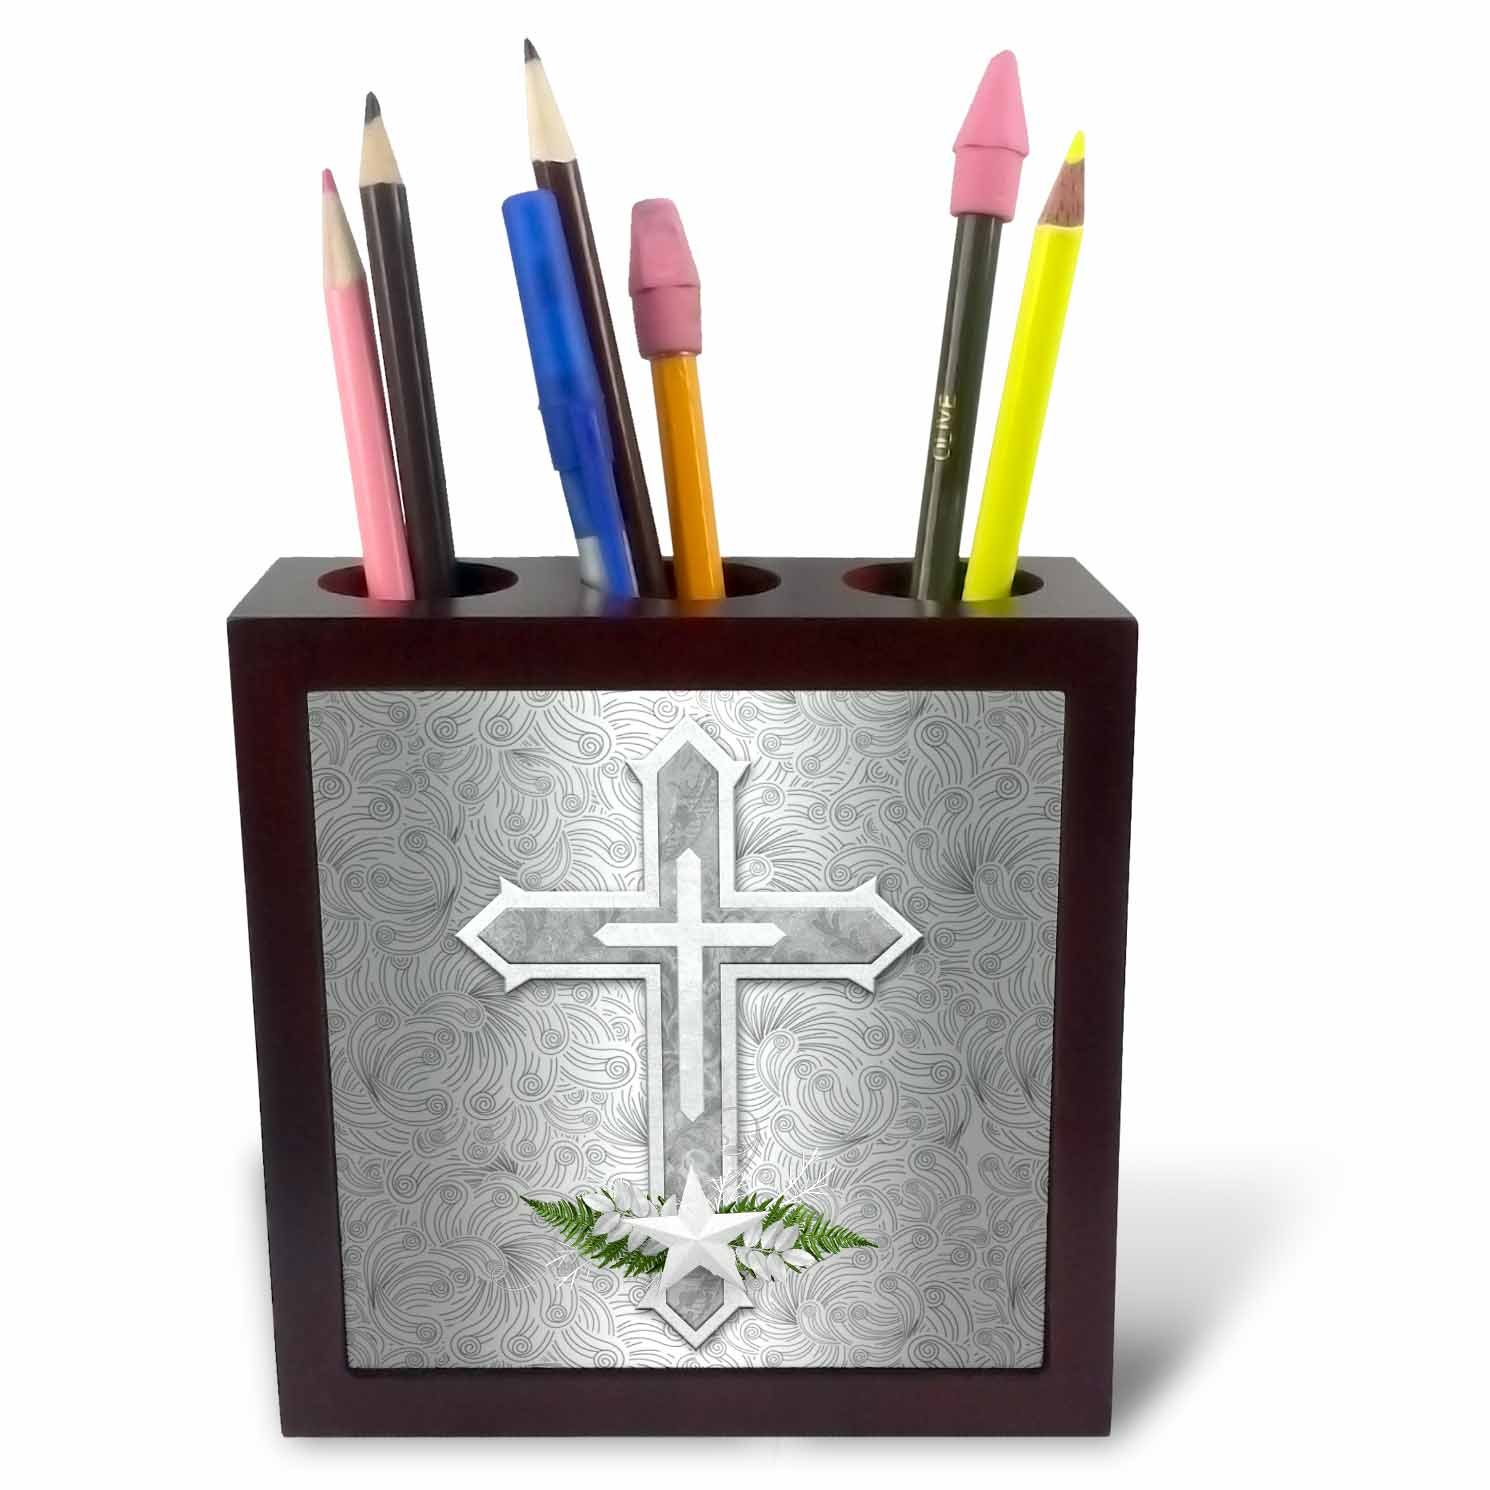 3dRose Doreen Erhardt Inspirational - Christian Cross in Silver and White with Star and Fern Leaves - 5 inch tile pen holder (ph_264280_1)